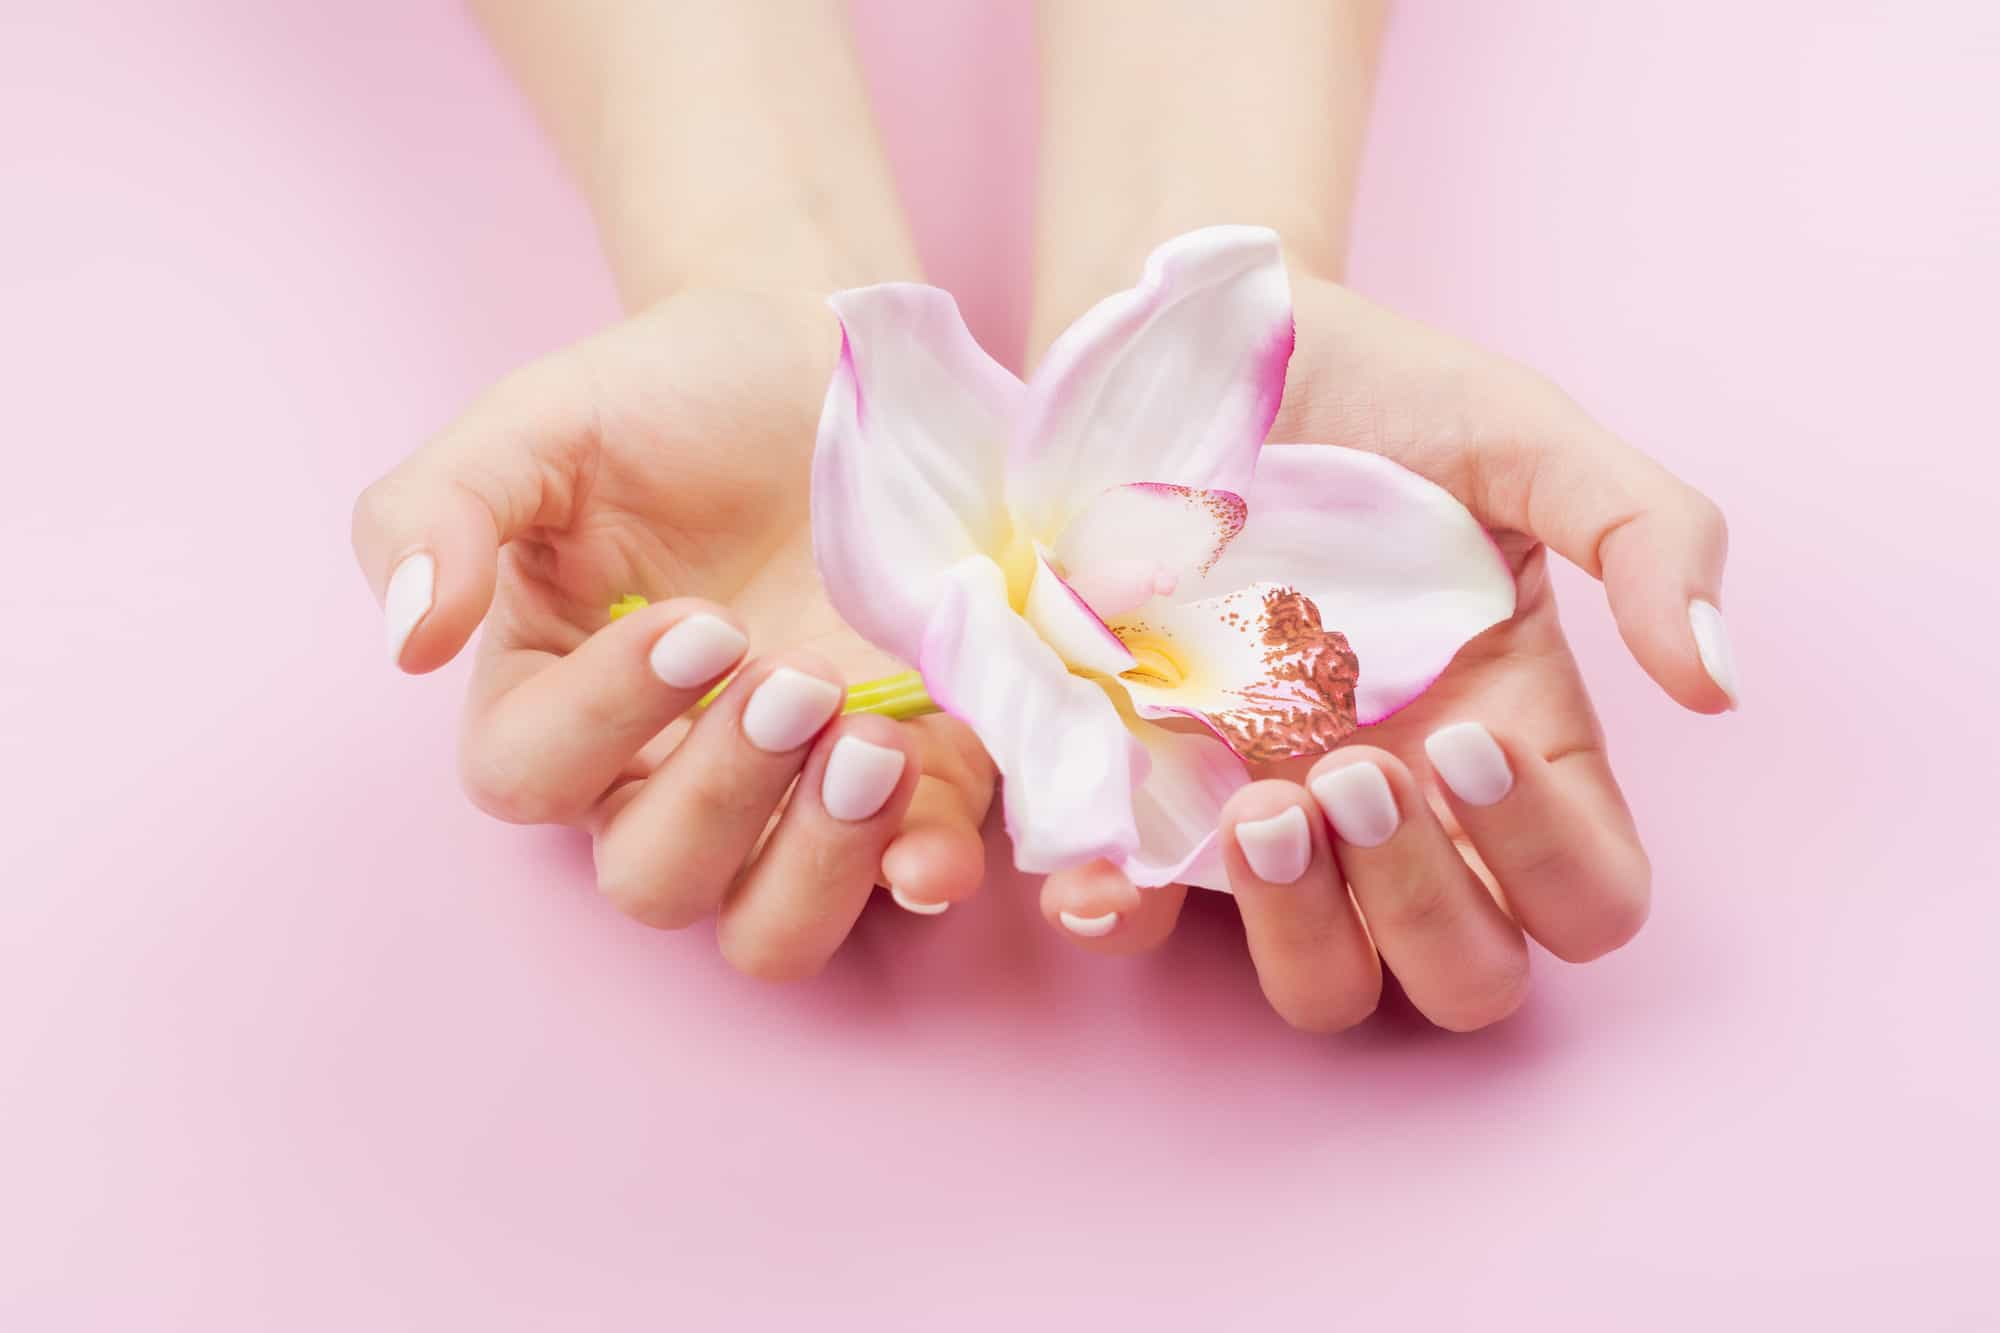 Females hands with pastel manicure are holding an orchid flower